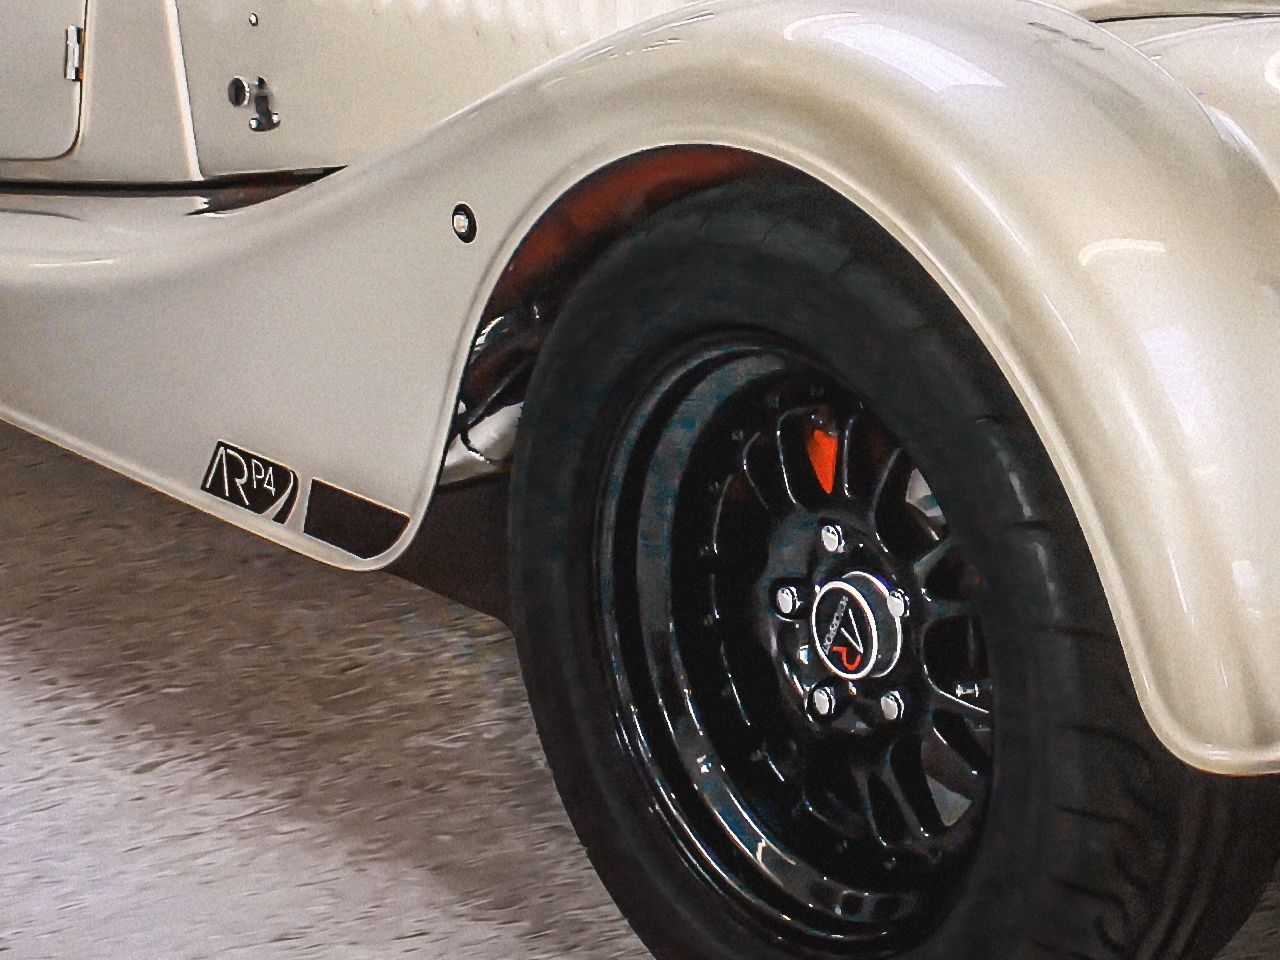 morgan-plus-4-ar-p4-by-ar-motorsport-0-100-prezzo-price-6